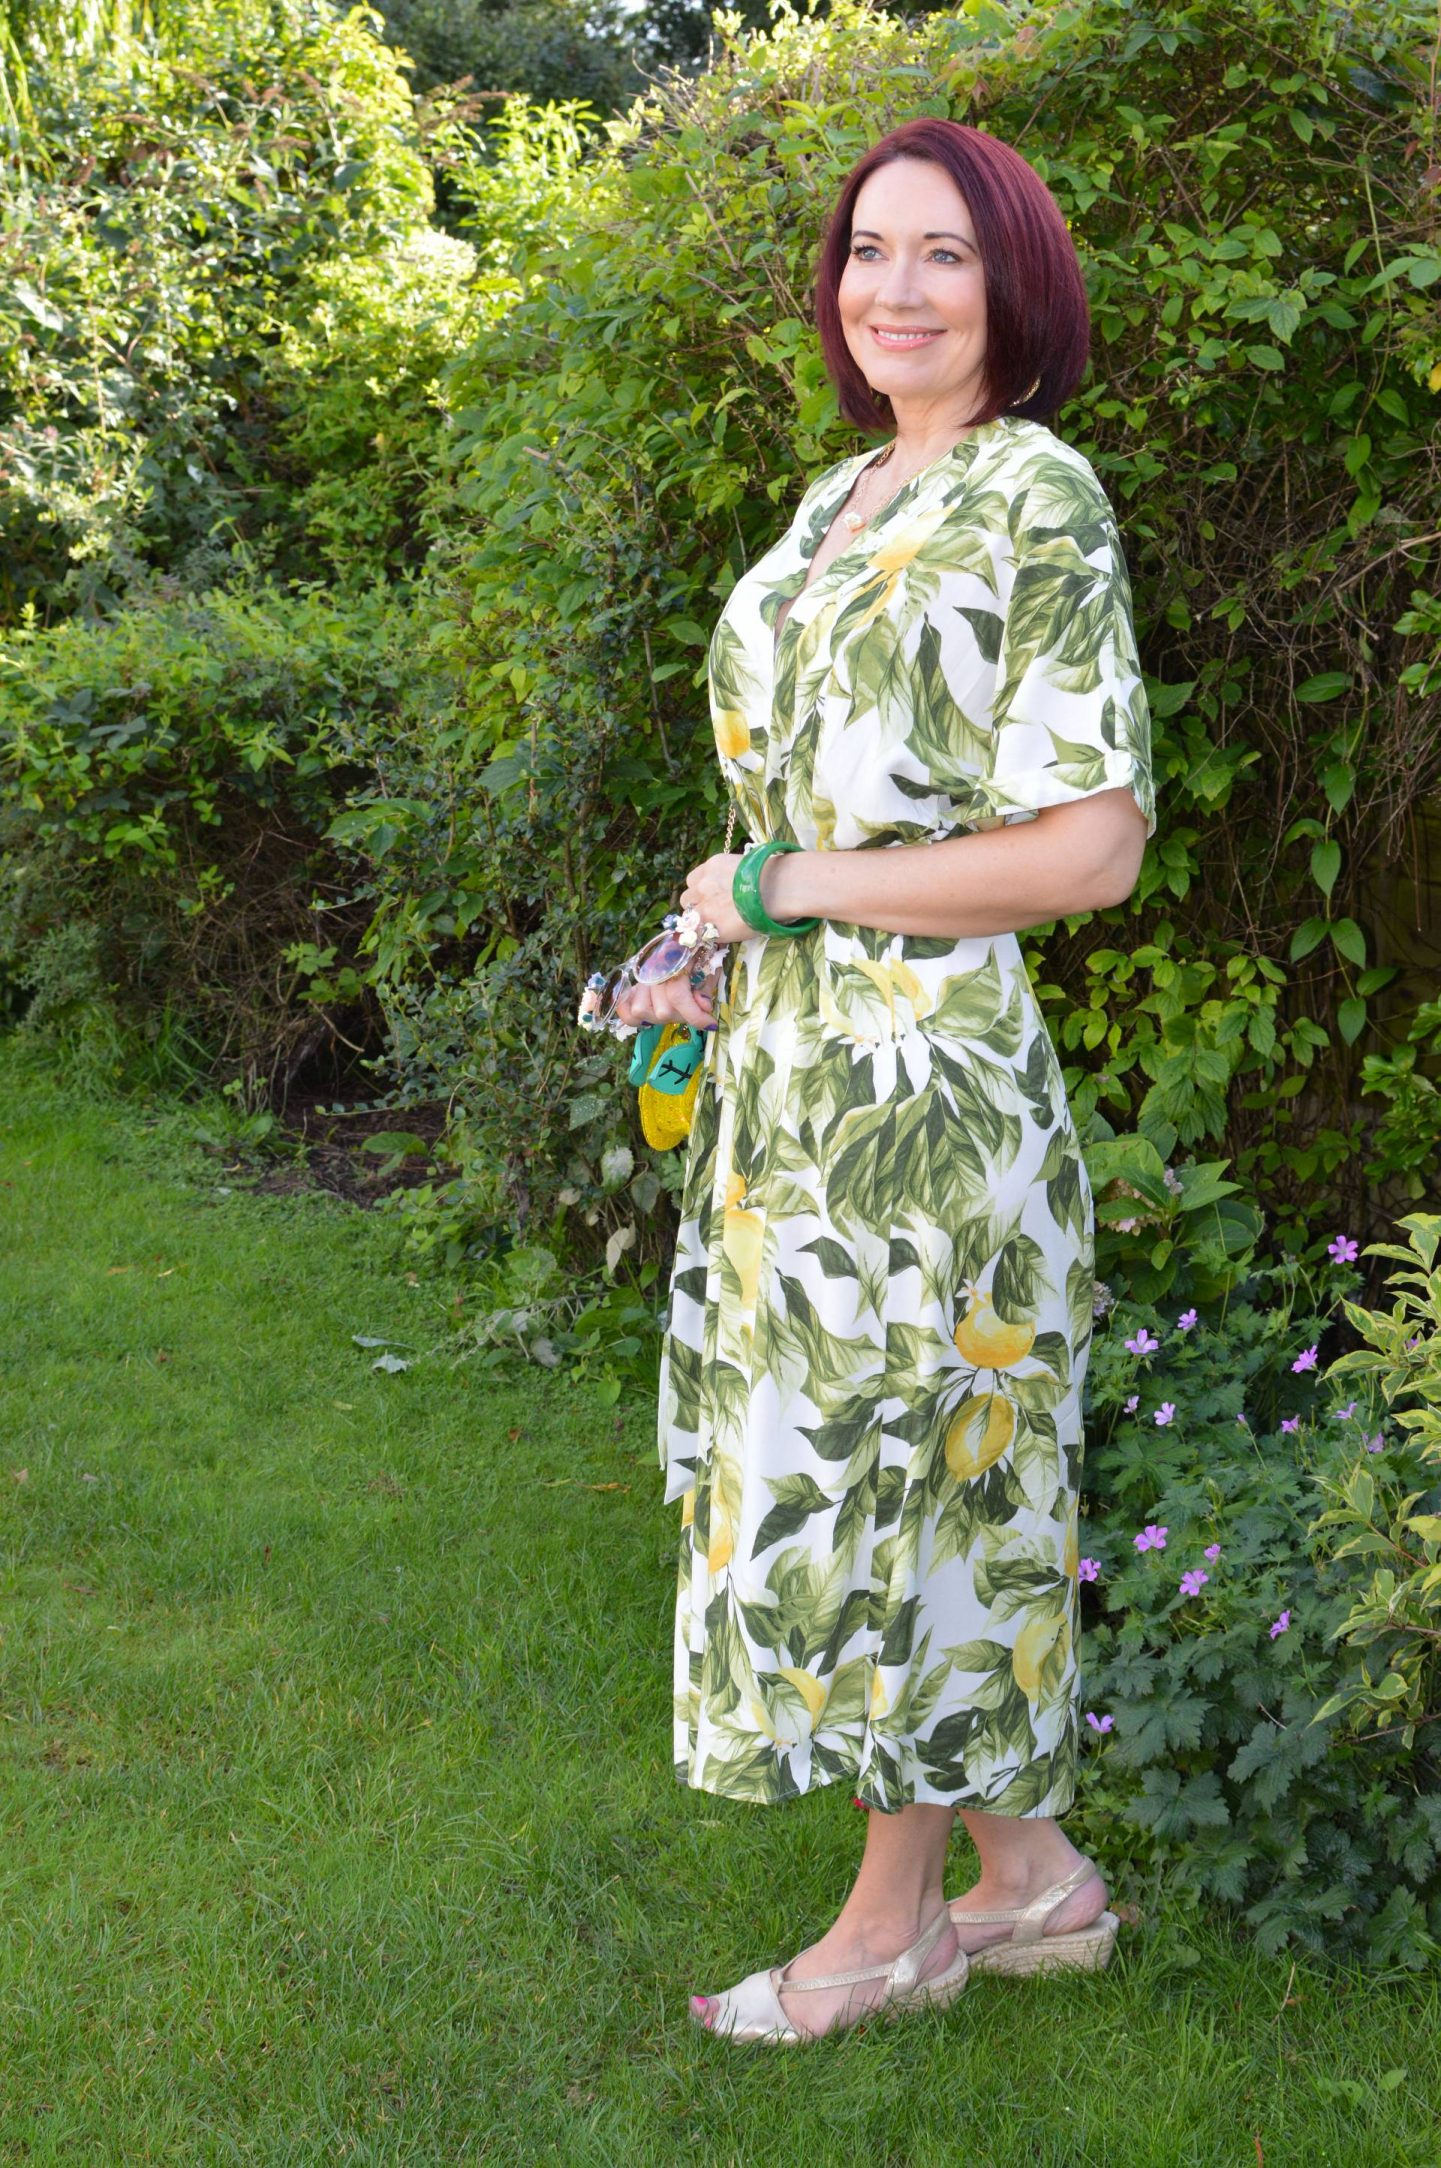 H&M Lemon Print Midi Dress, Skinny Dip lemon bag,